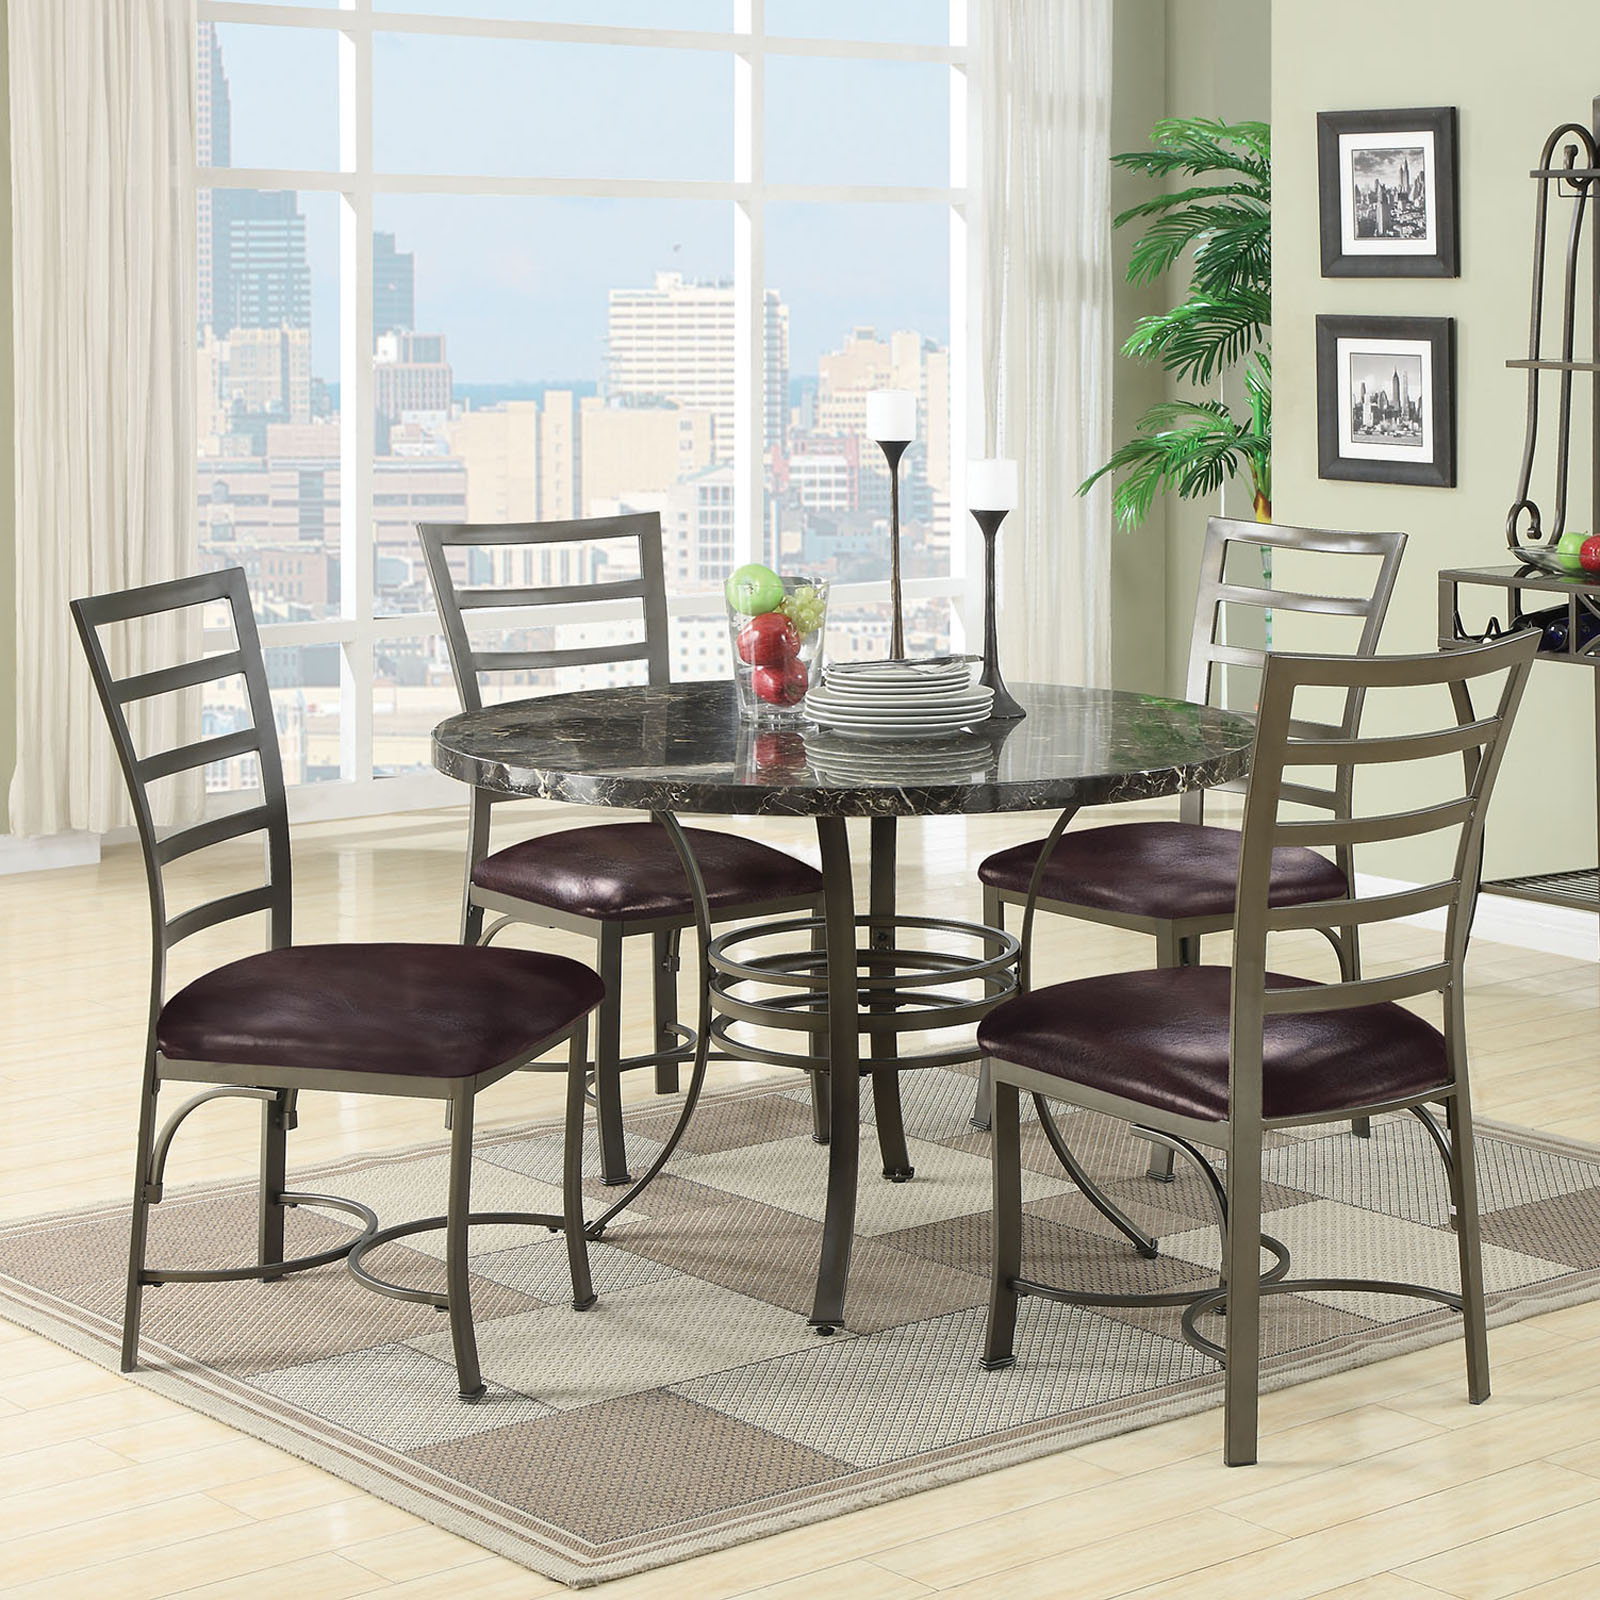 Acme Furniture Daisy 5 Piece Round Faux Marble Dining